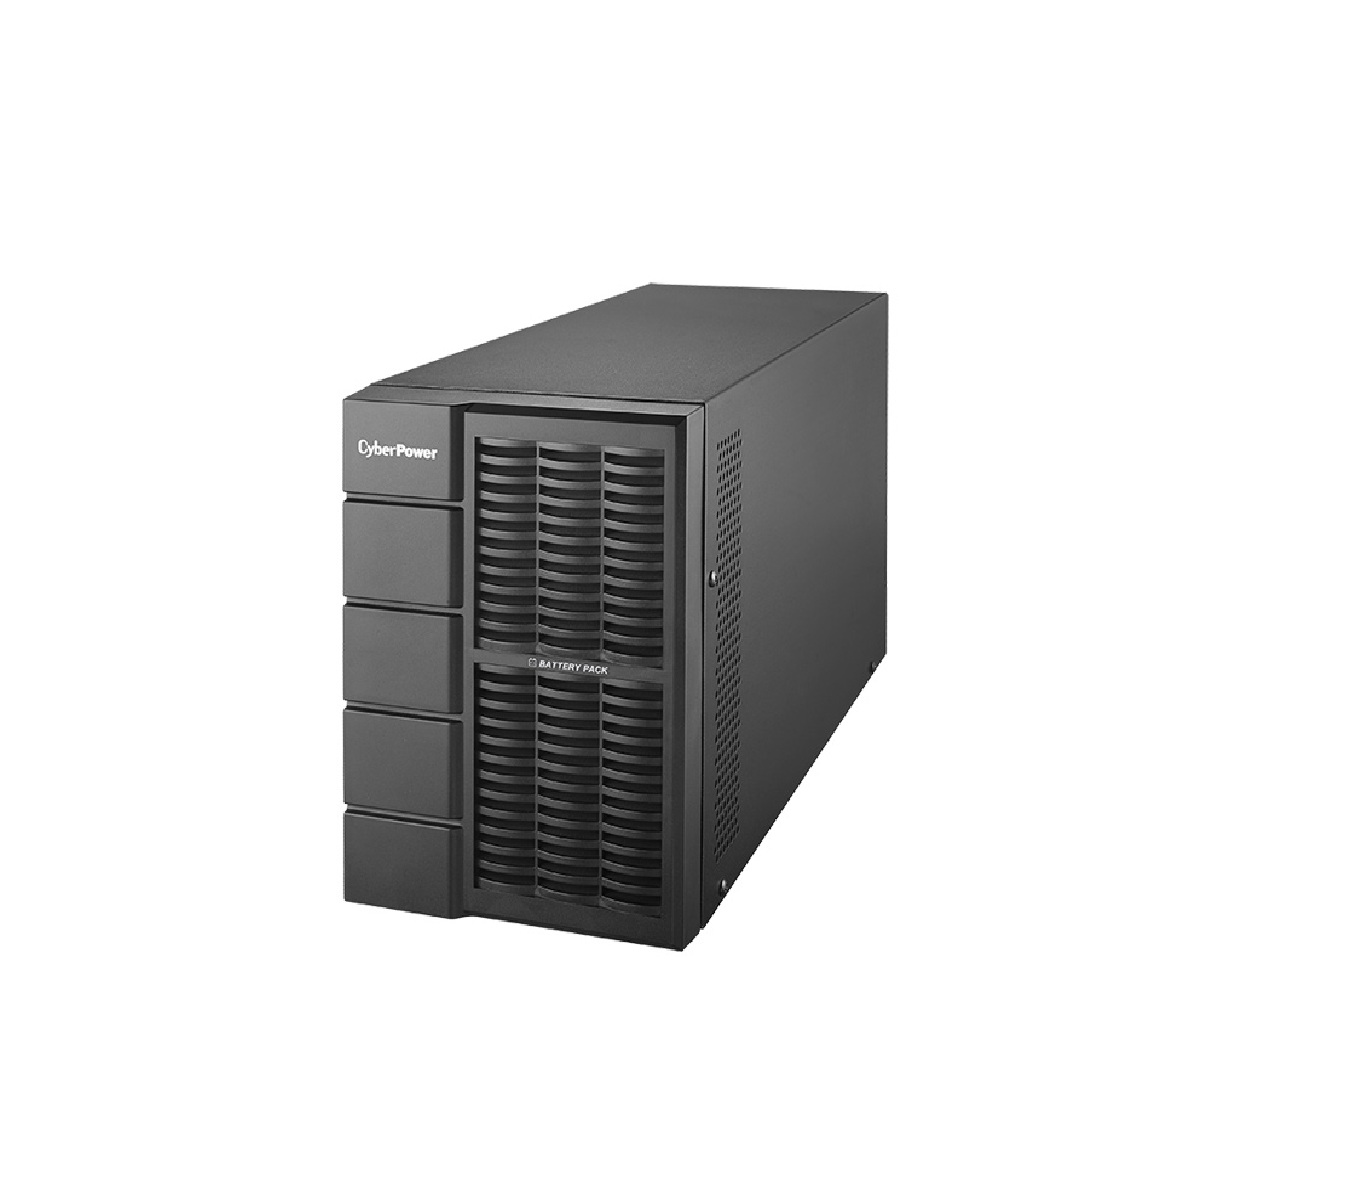 Bộ nguồn ắc quy CyberPower BPSE72V45A